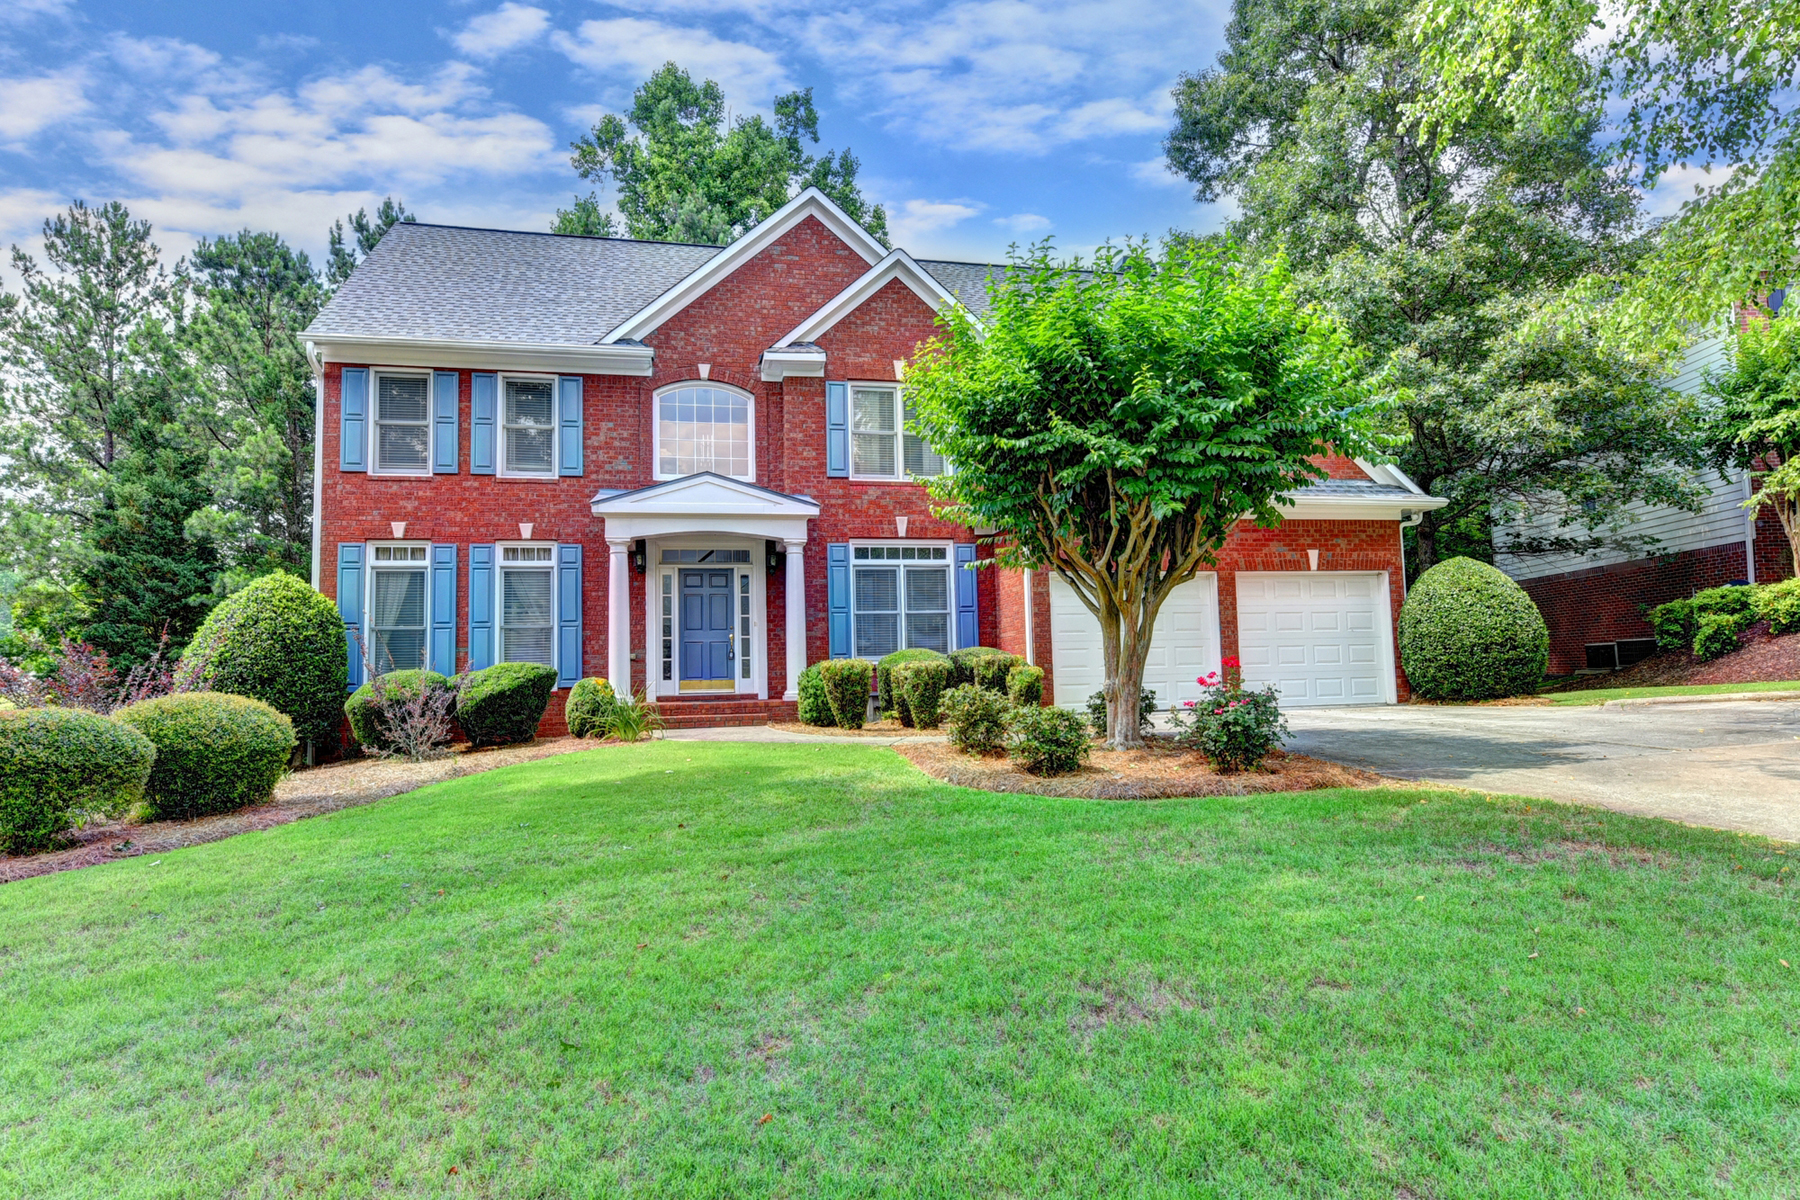 Single Family Home for Sale at Fabulous Home In Cambridge With Recent Upgrades! 5610 Millwick Drive Johns Creek, Georgia 30005 United States